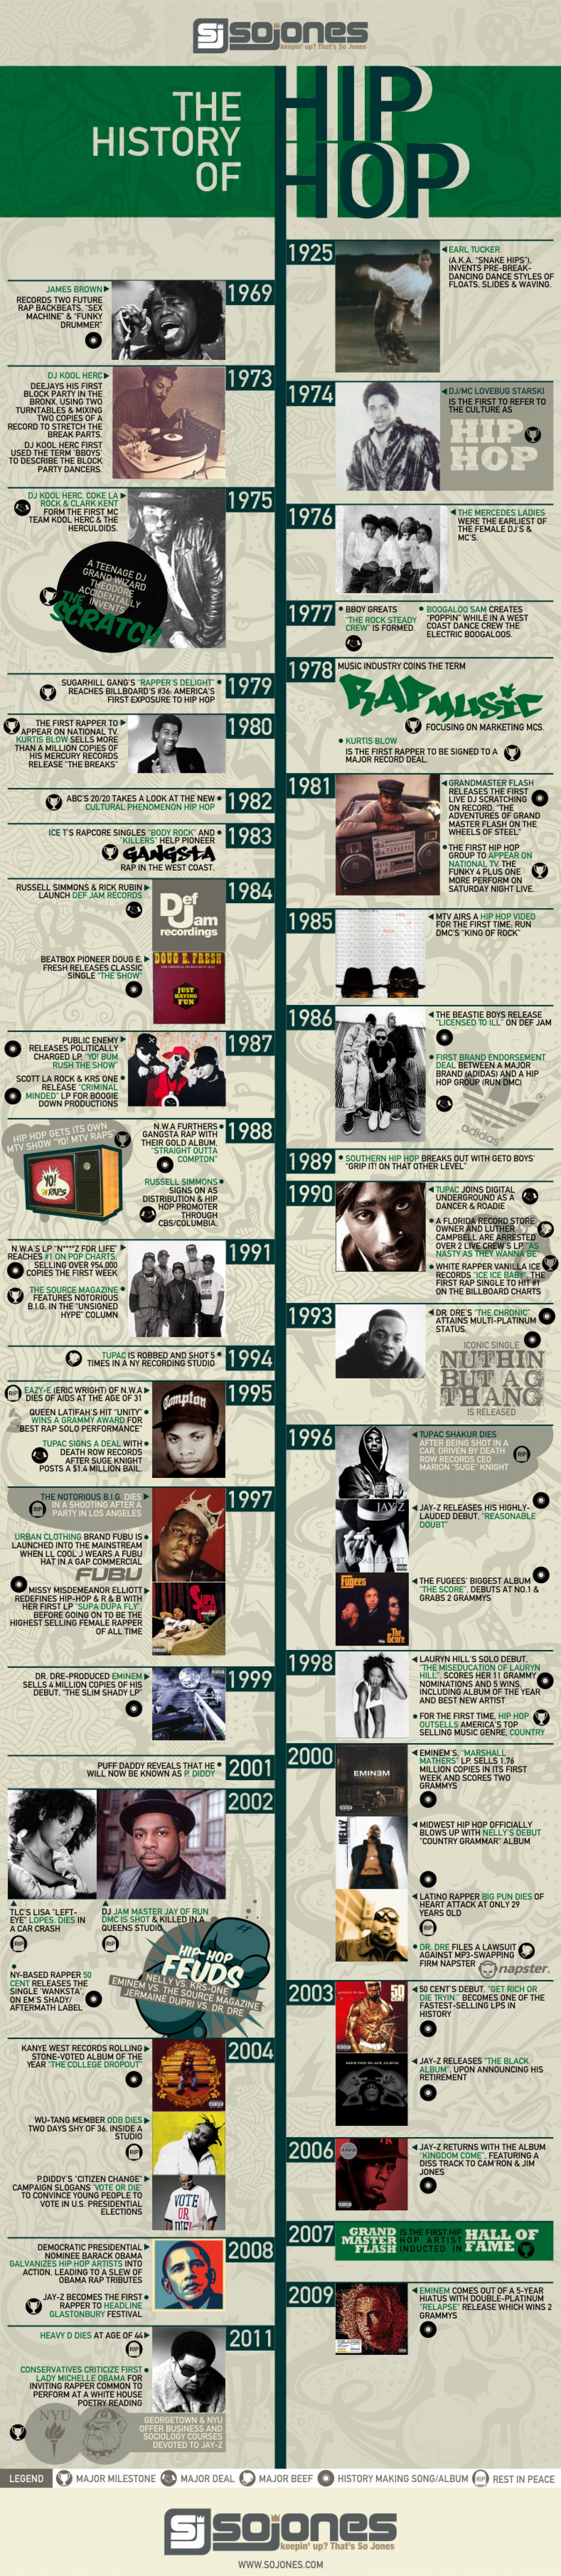 history-of-hip-hop-infographic